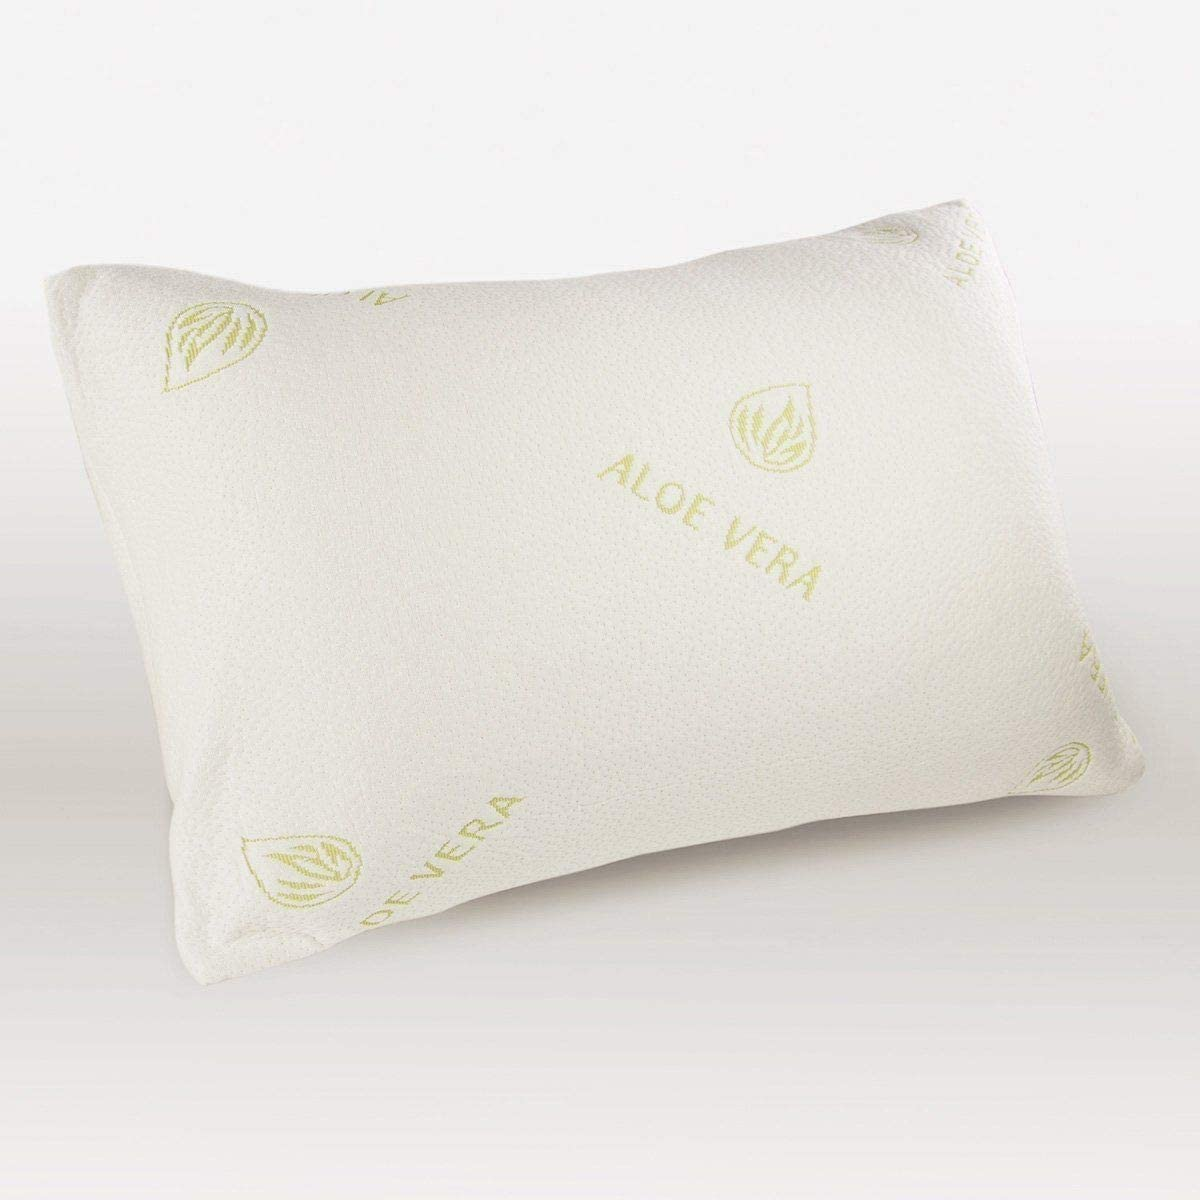 Aloe Vera Pillow Anti Allergy Neck